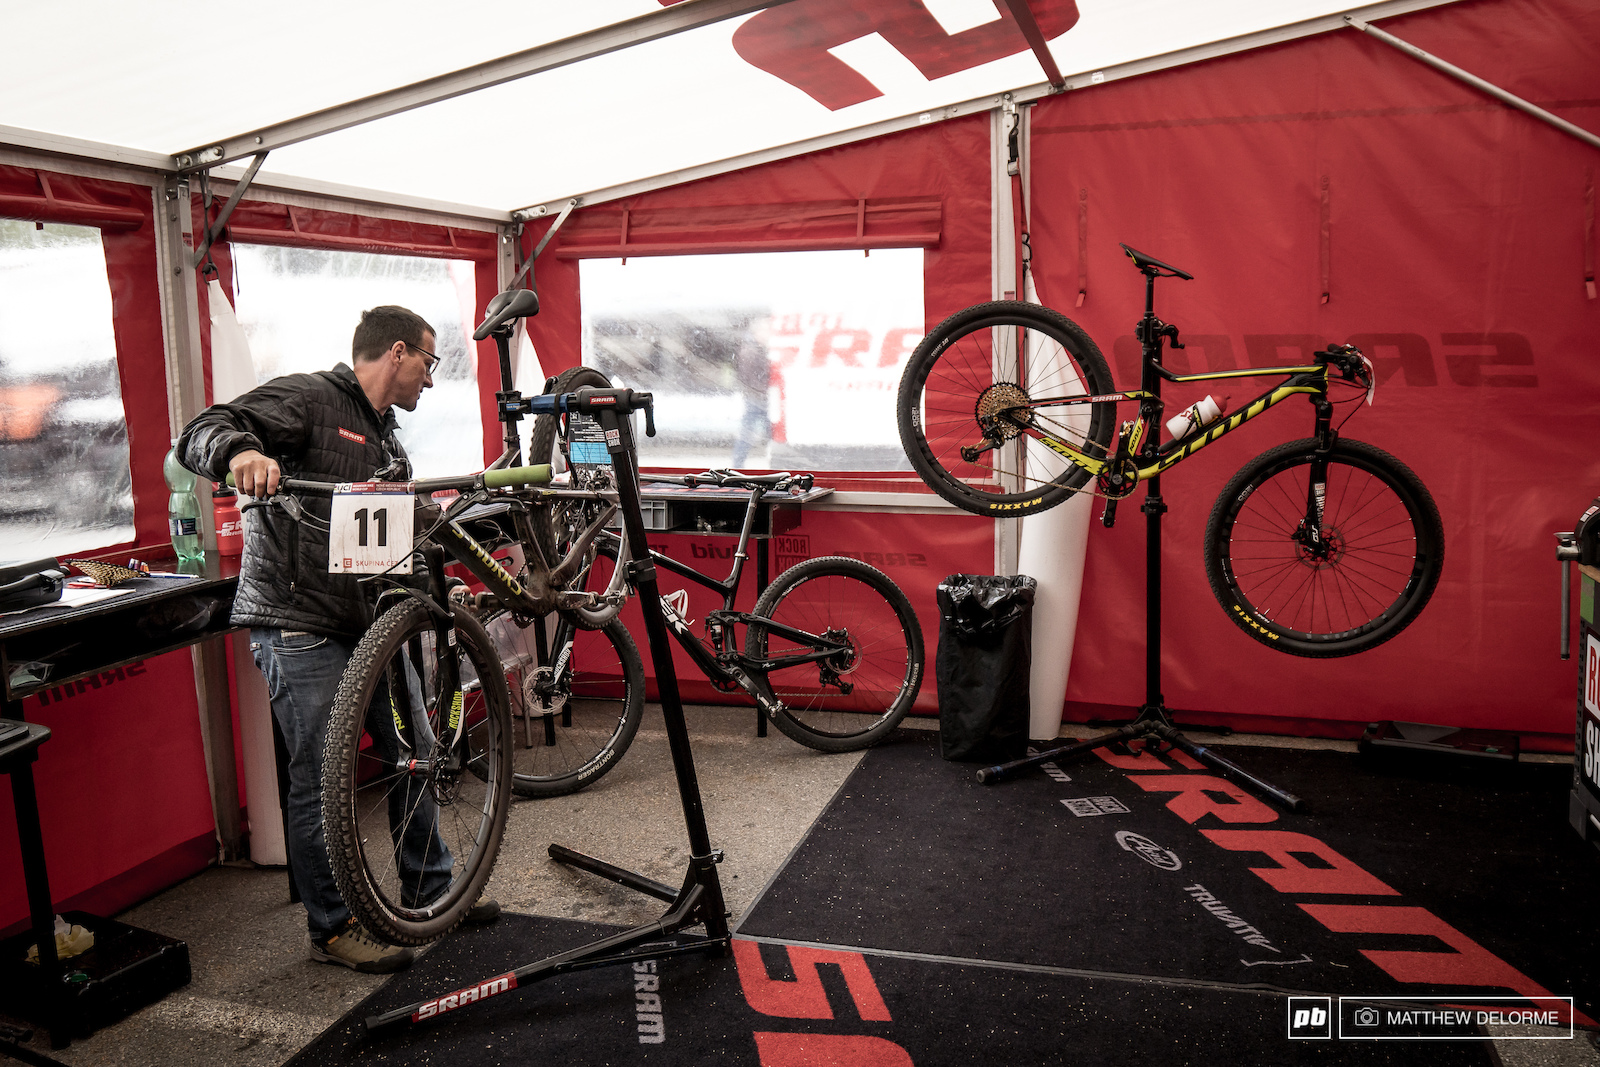 The always busy SRAM techs keeping those big wheels turning.